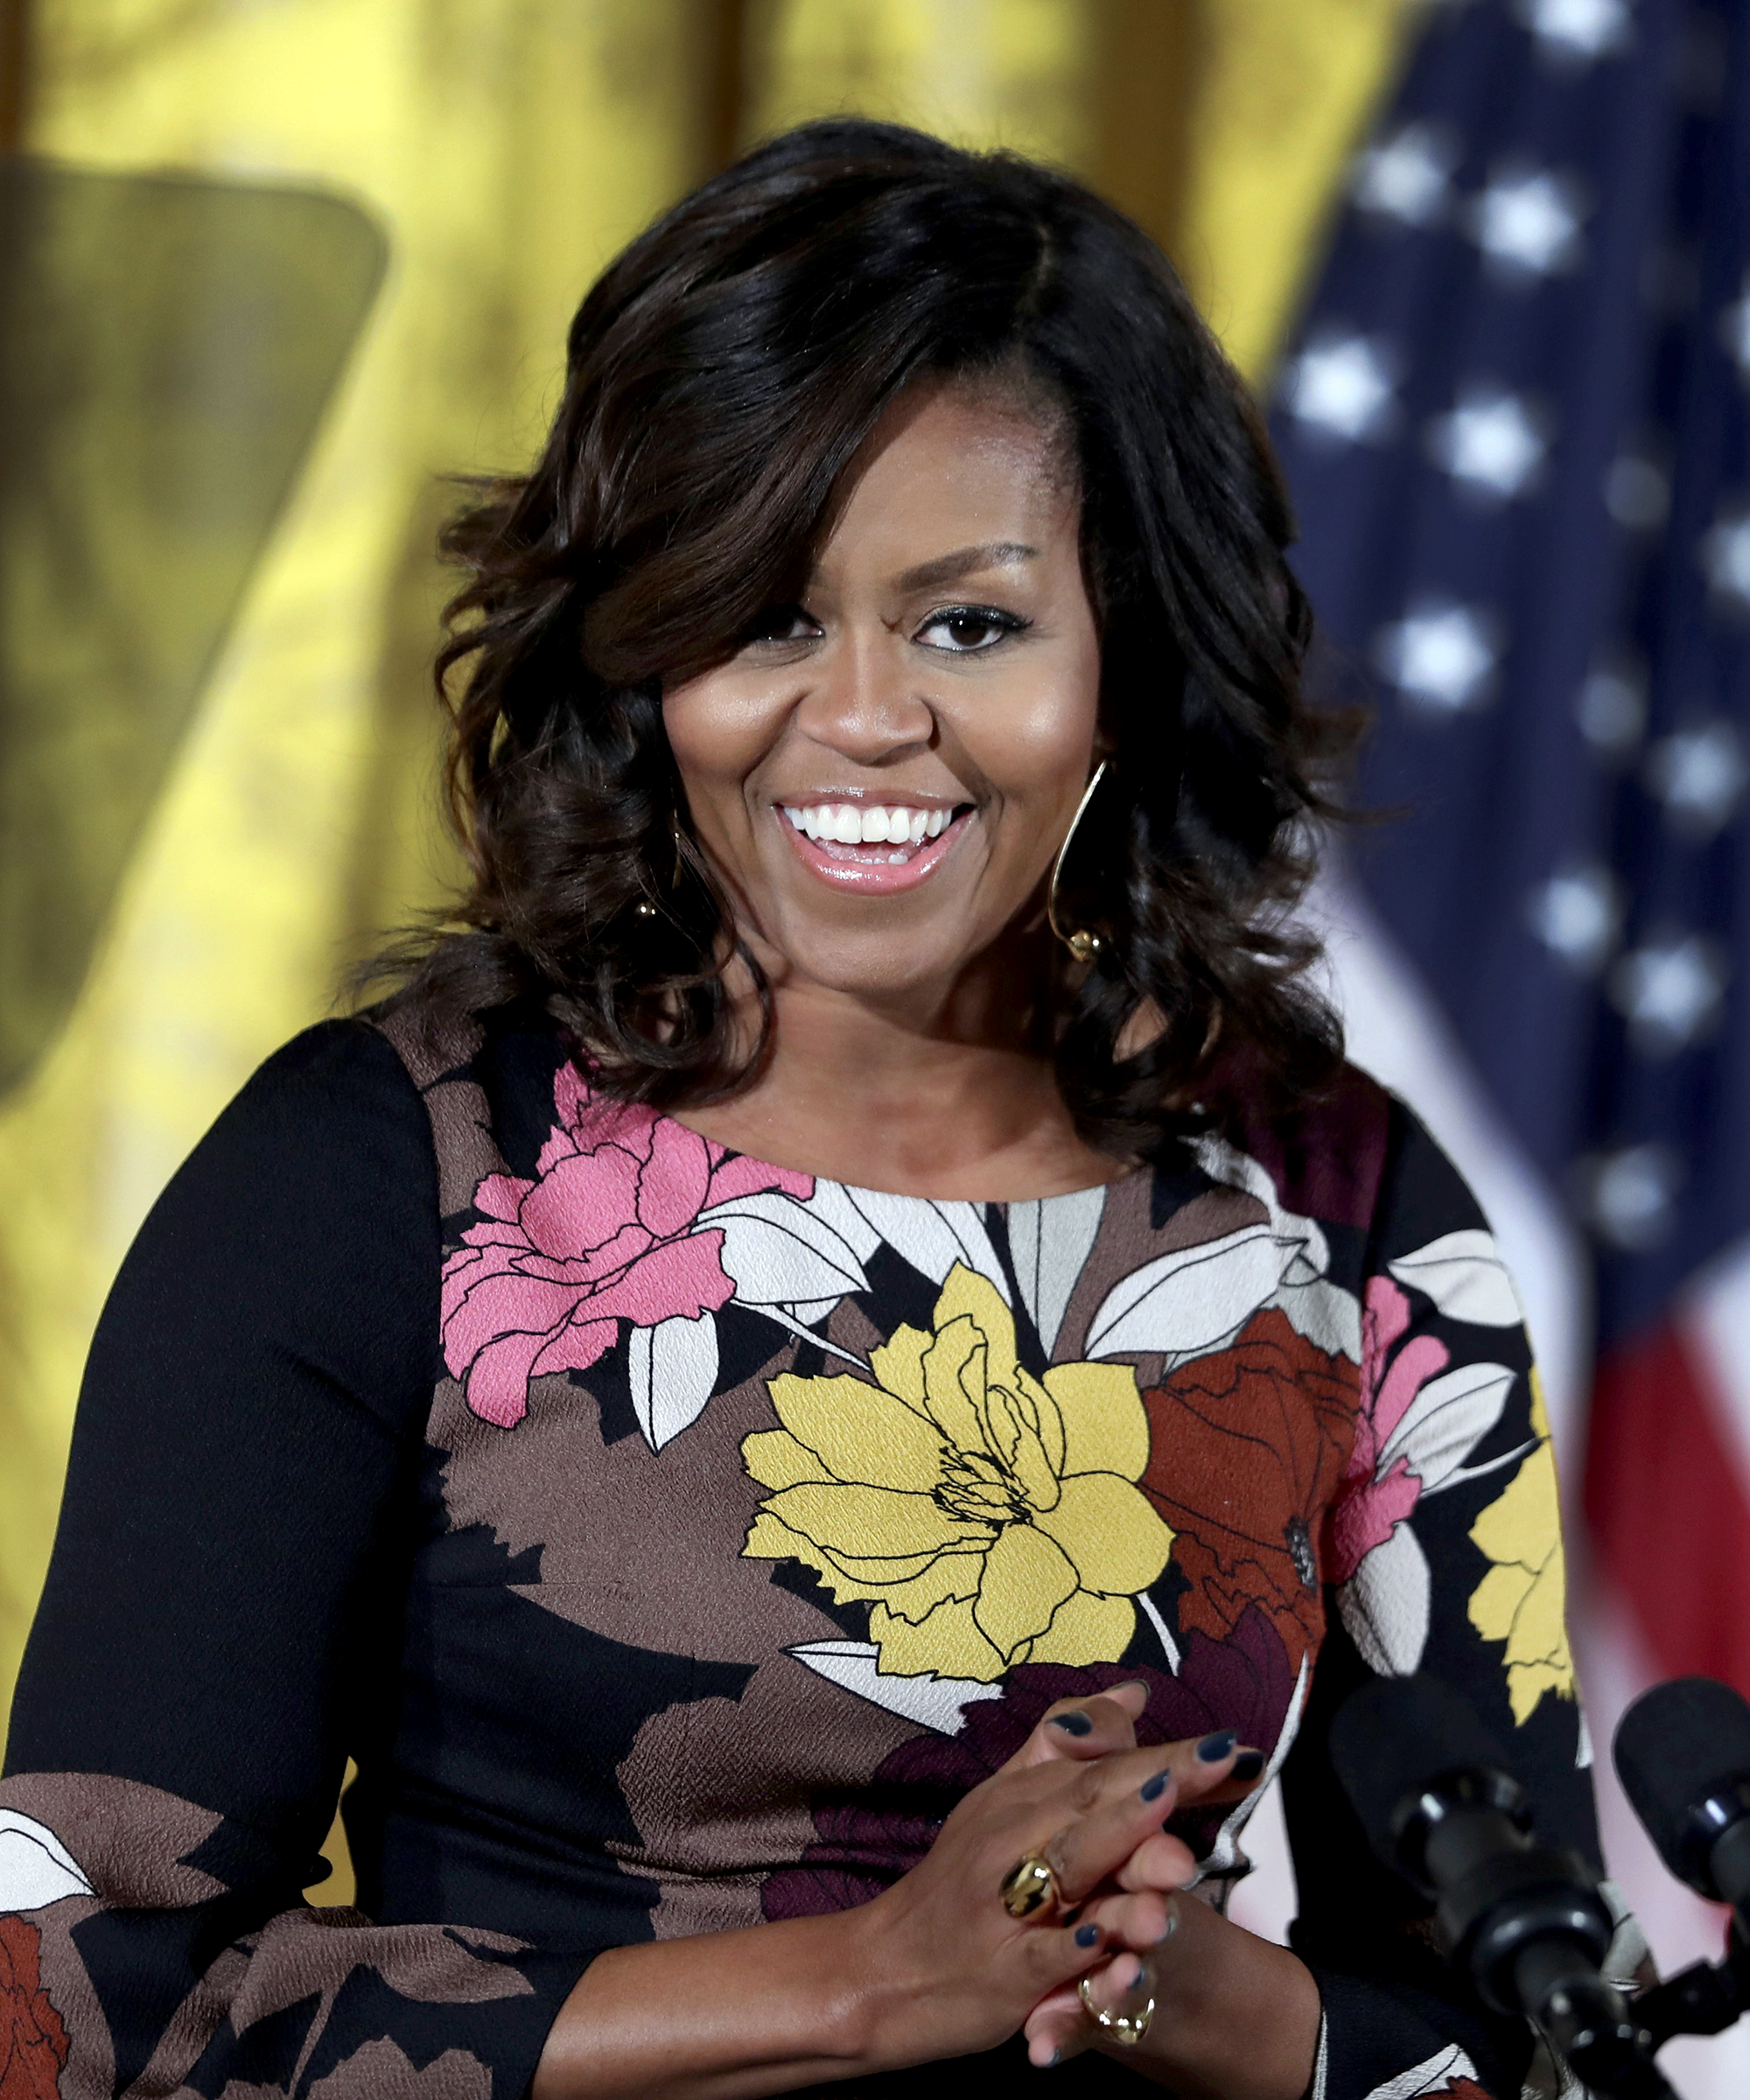 michelle obama natural hair curls twitter reactions